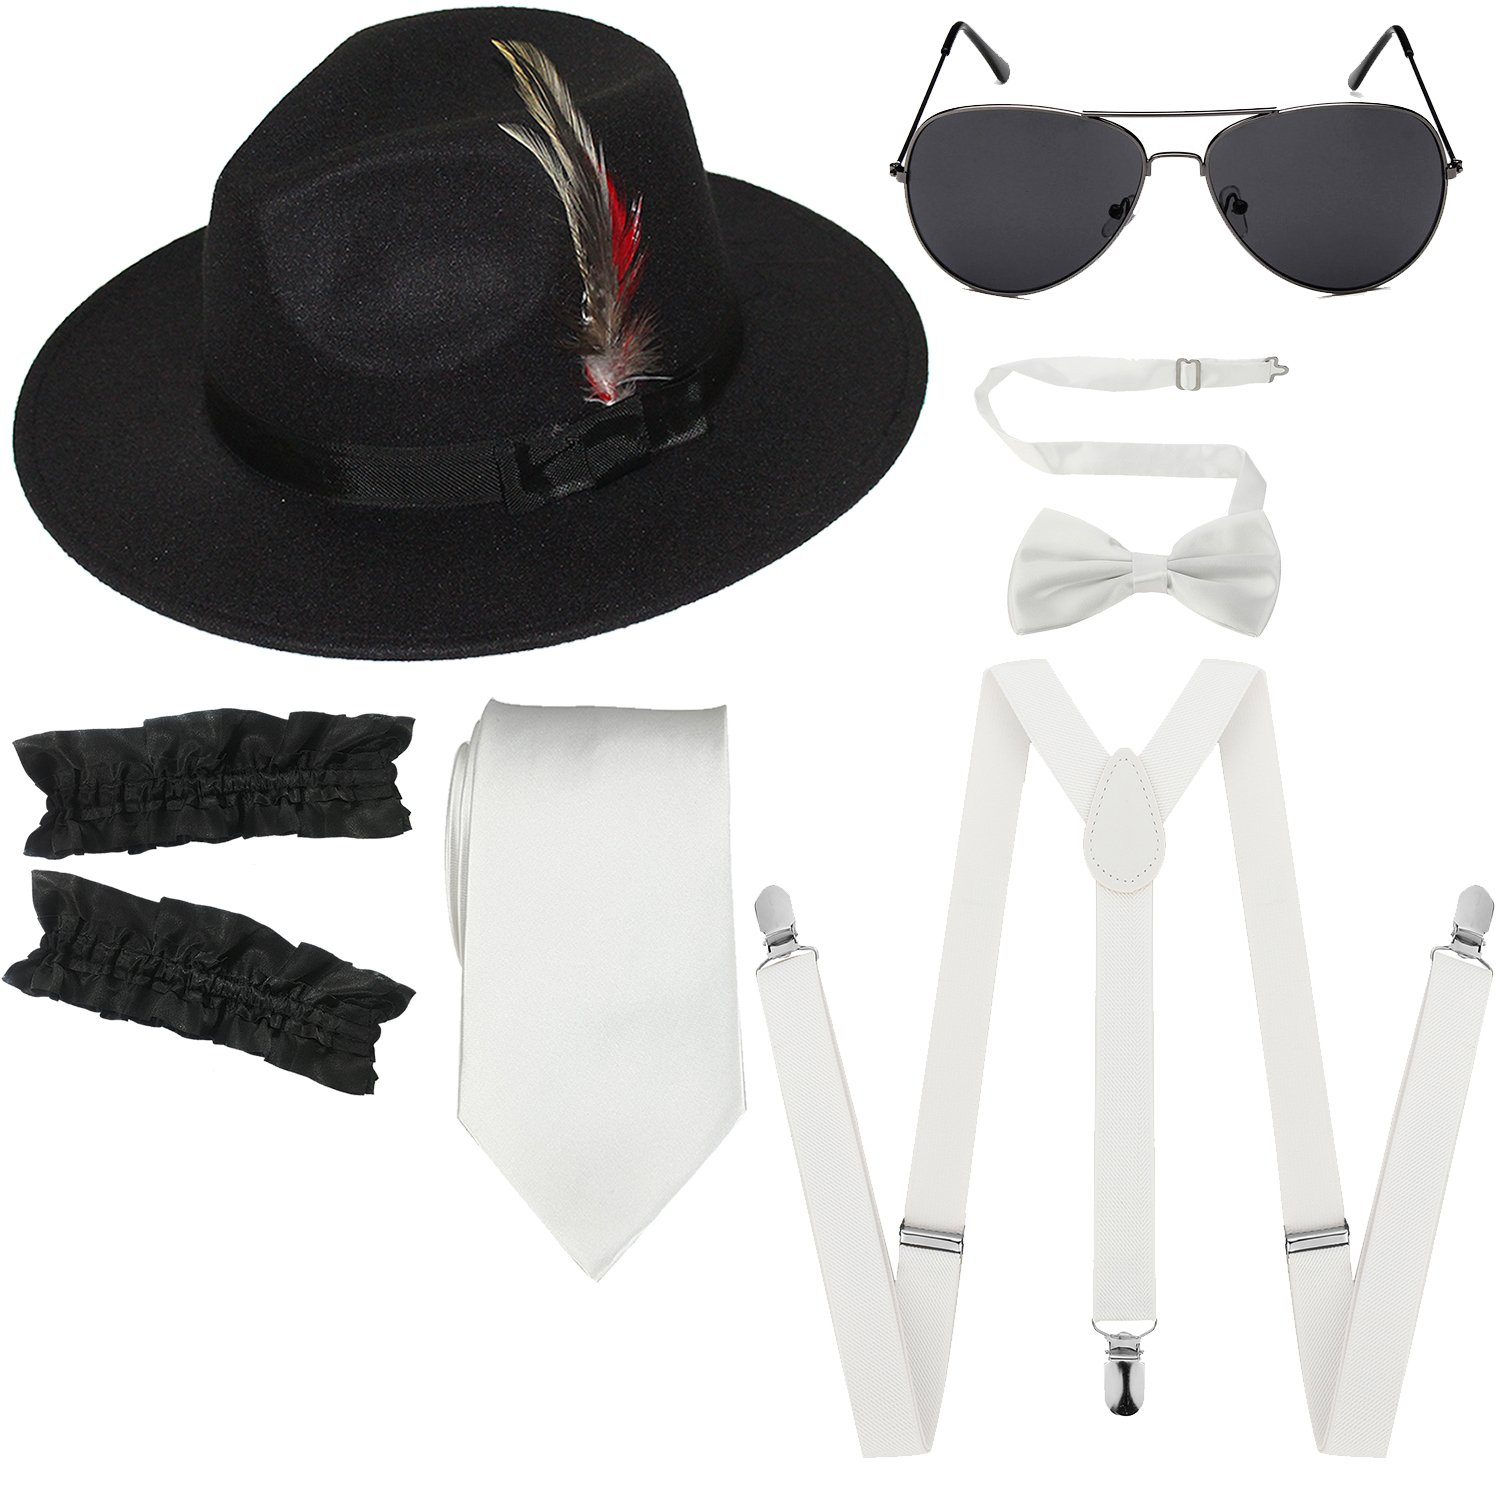 1920s Mens Manhattan Trilby Fedora Hat, Garters Armbands,Y-Back Suspenders & Pre Tied Bowtie, Gangster Sunglass (White)